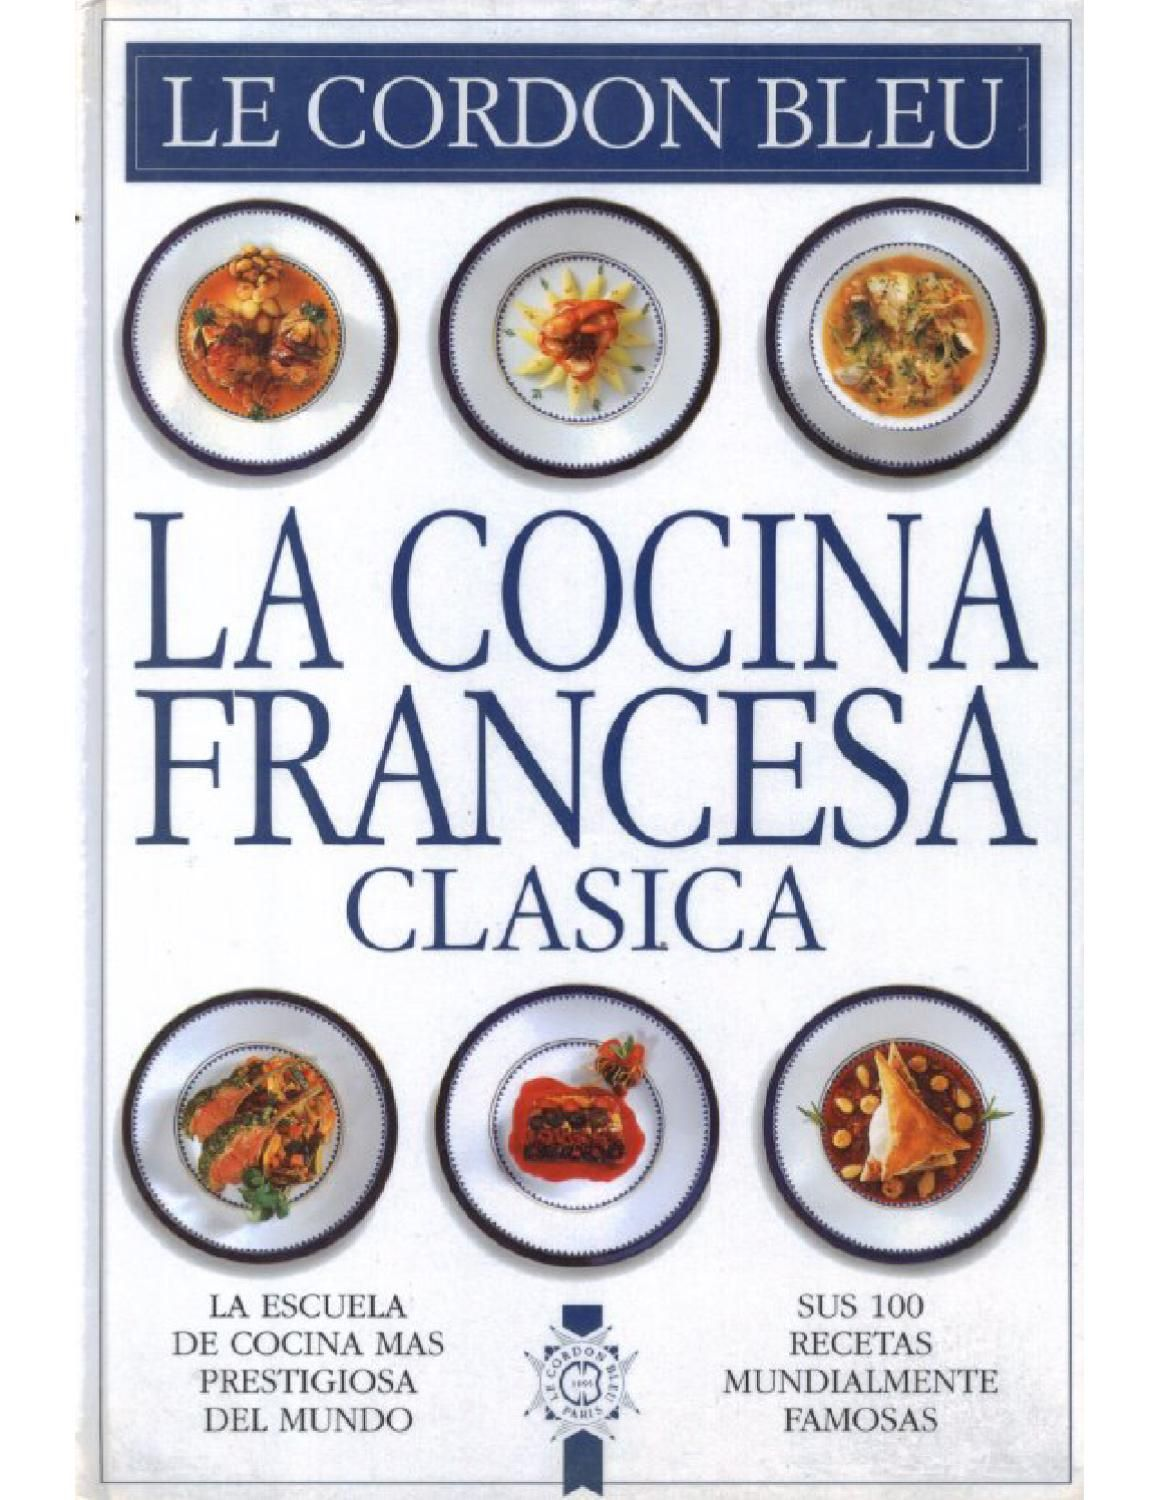 La Cocina Francesa Clasica Le Cordon Bleu Cordon Bleu International Recipes